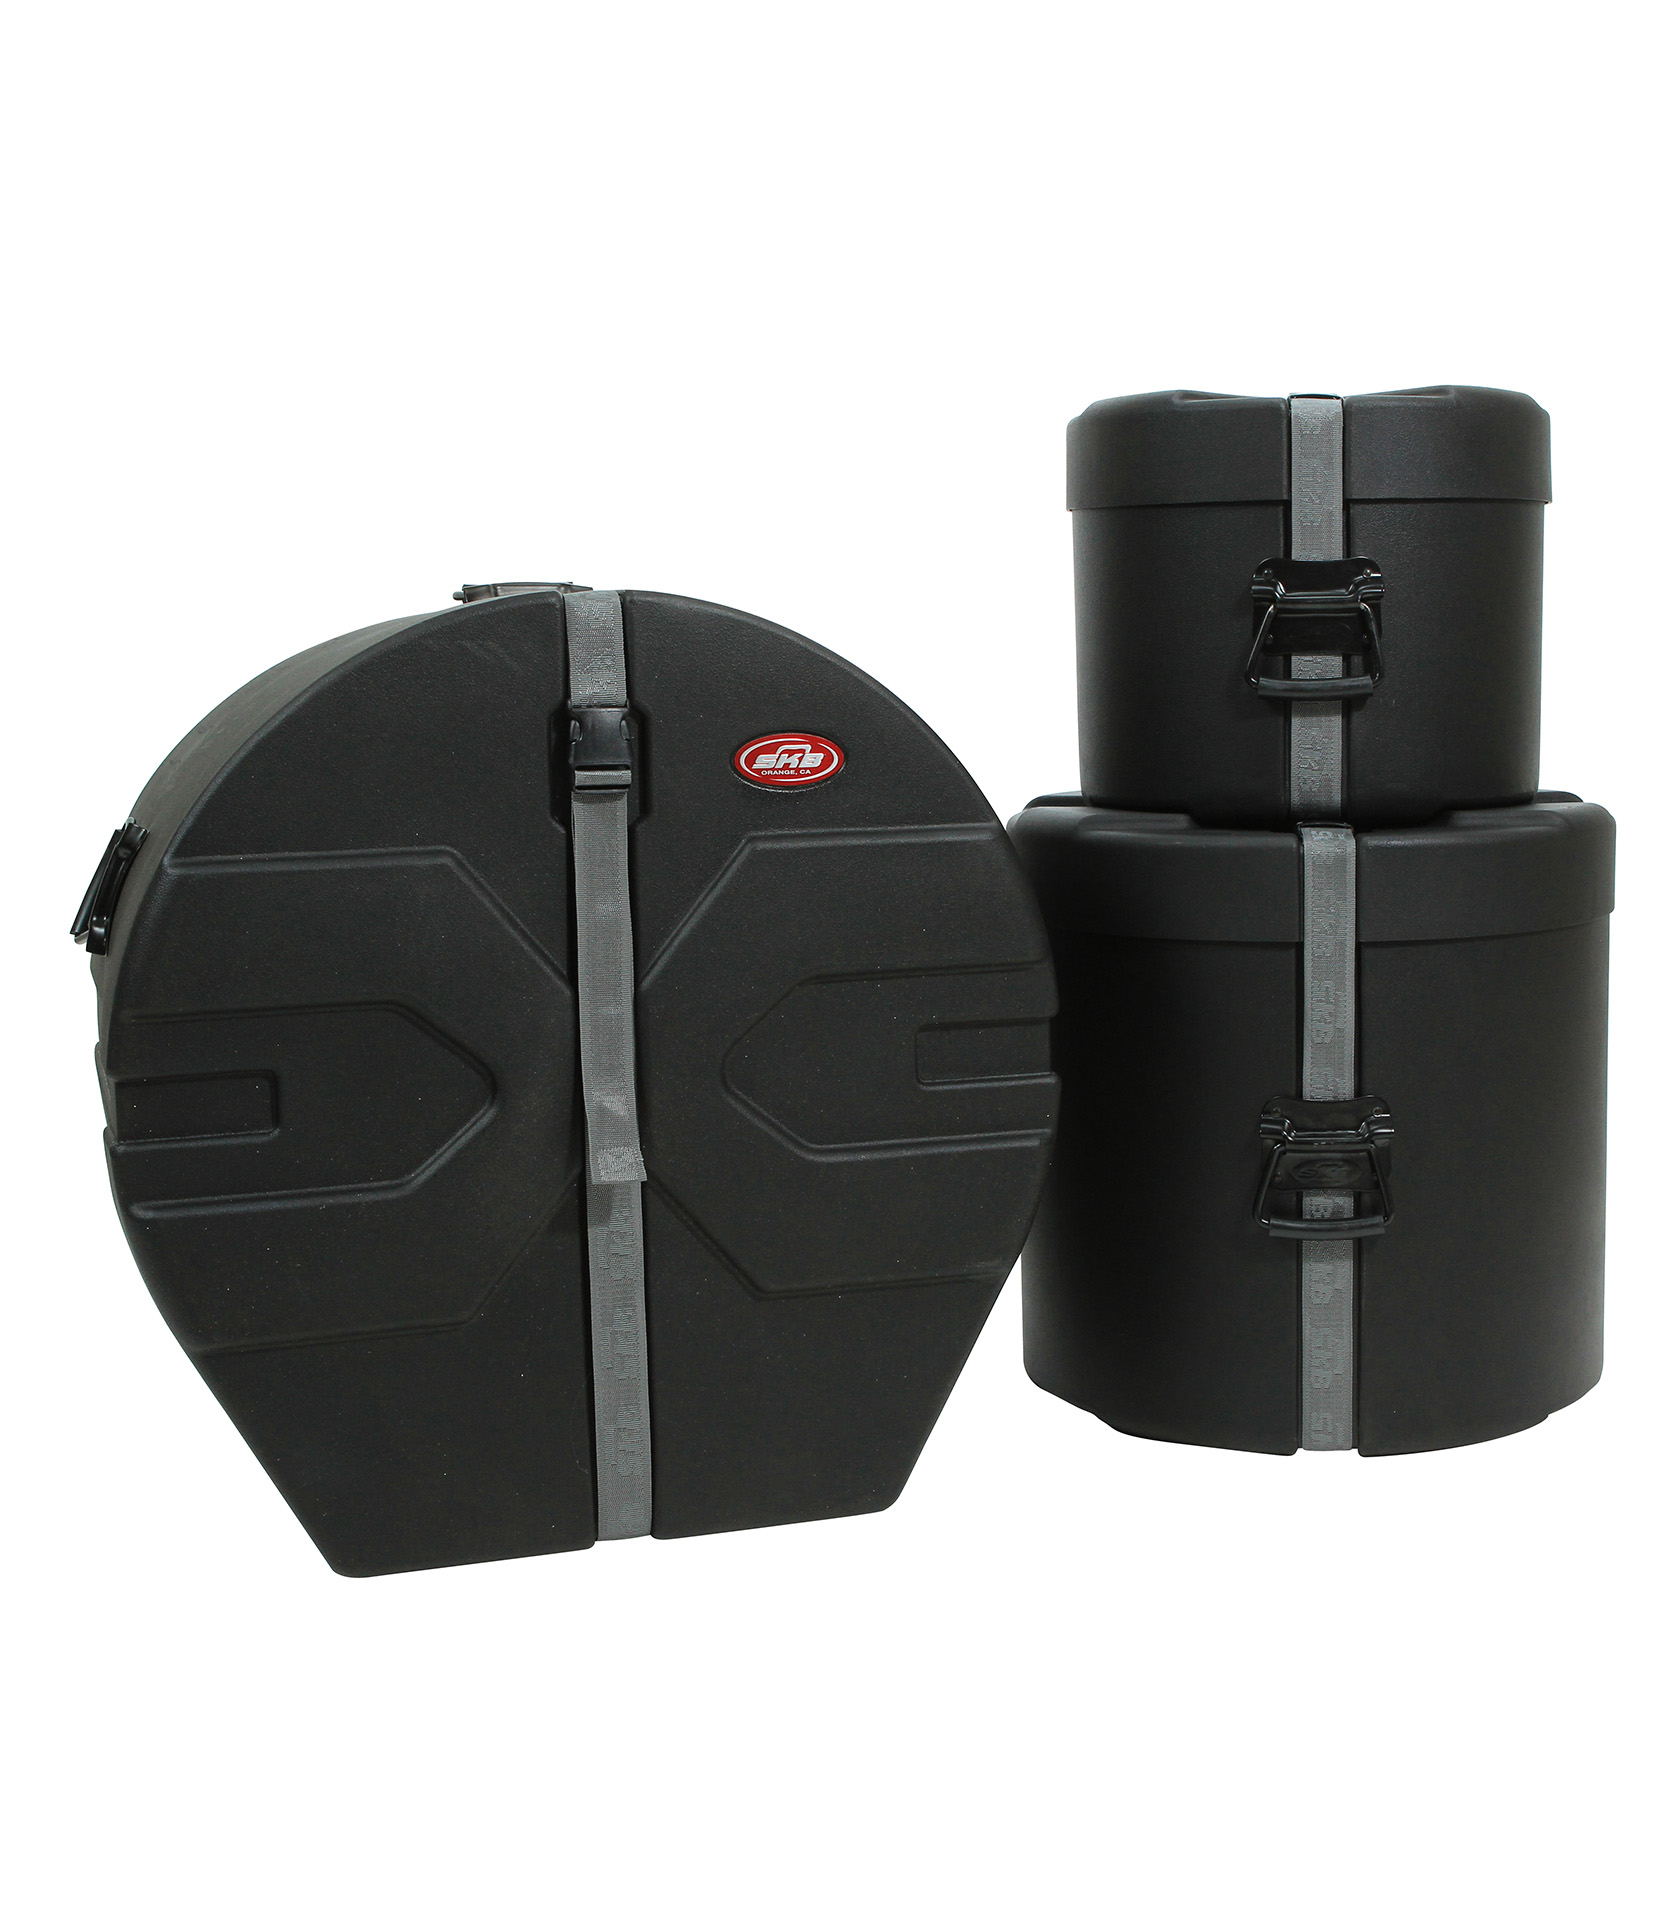 skb - 1SKB DRP2 Drum Package 2 IncludesD1822 D1012 - Melody House Musical Instruments